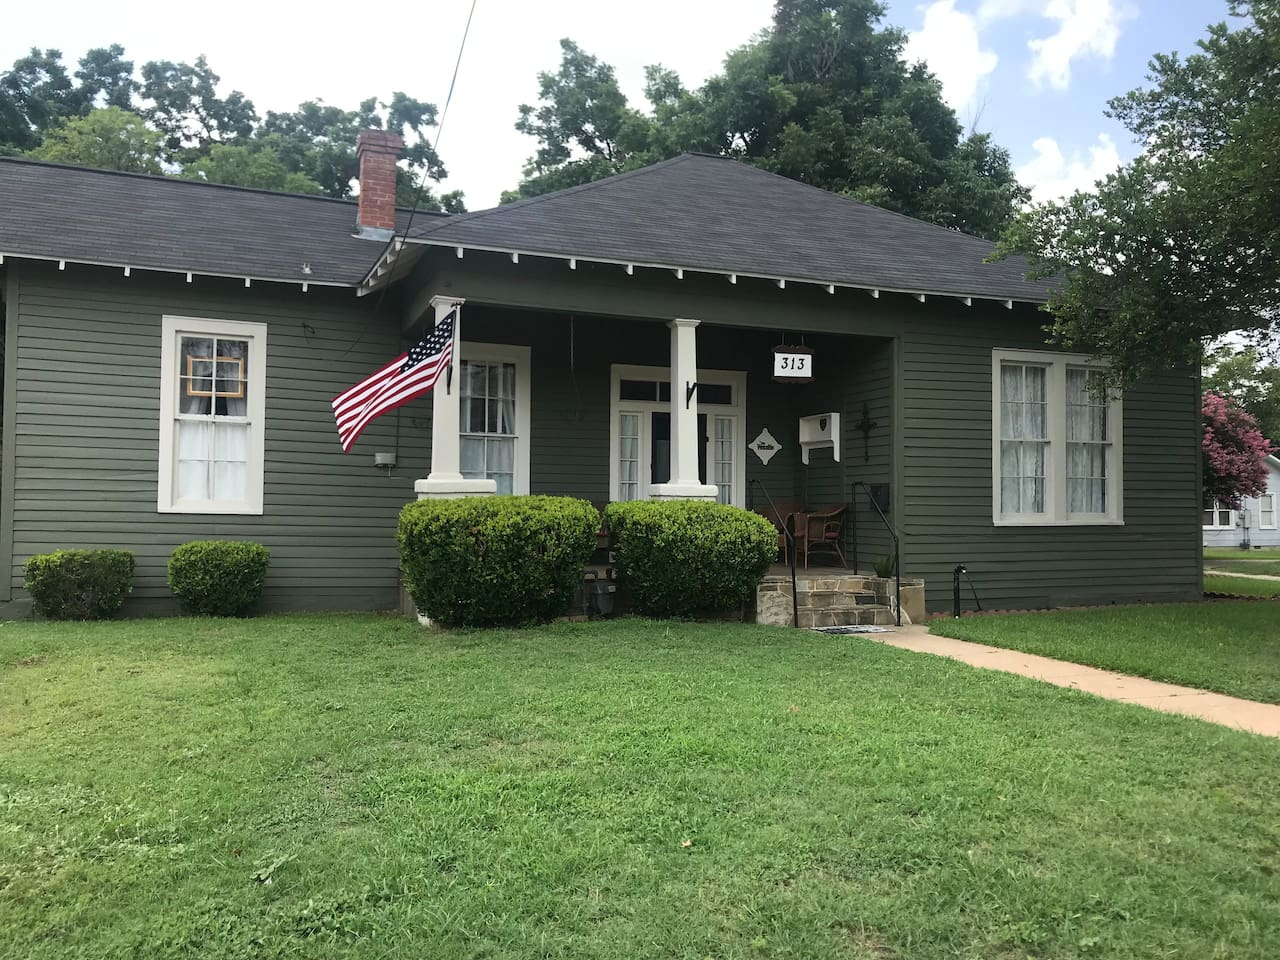 Charming early 1900's Craftsman bungalow